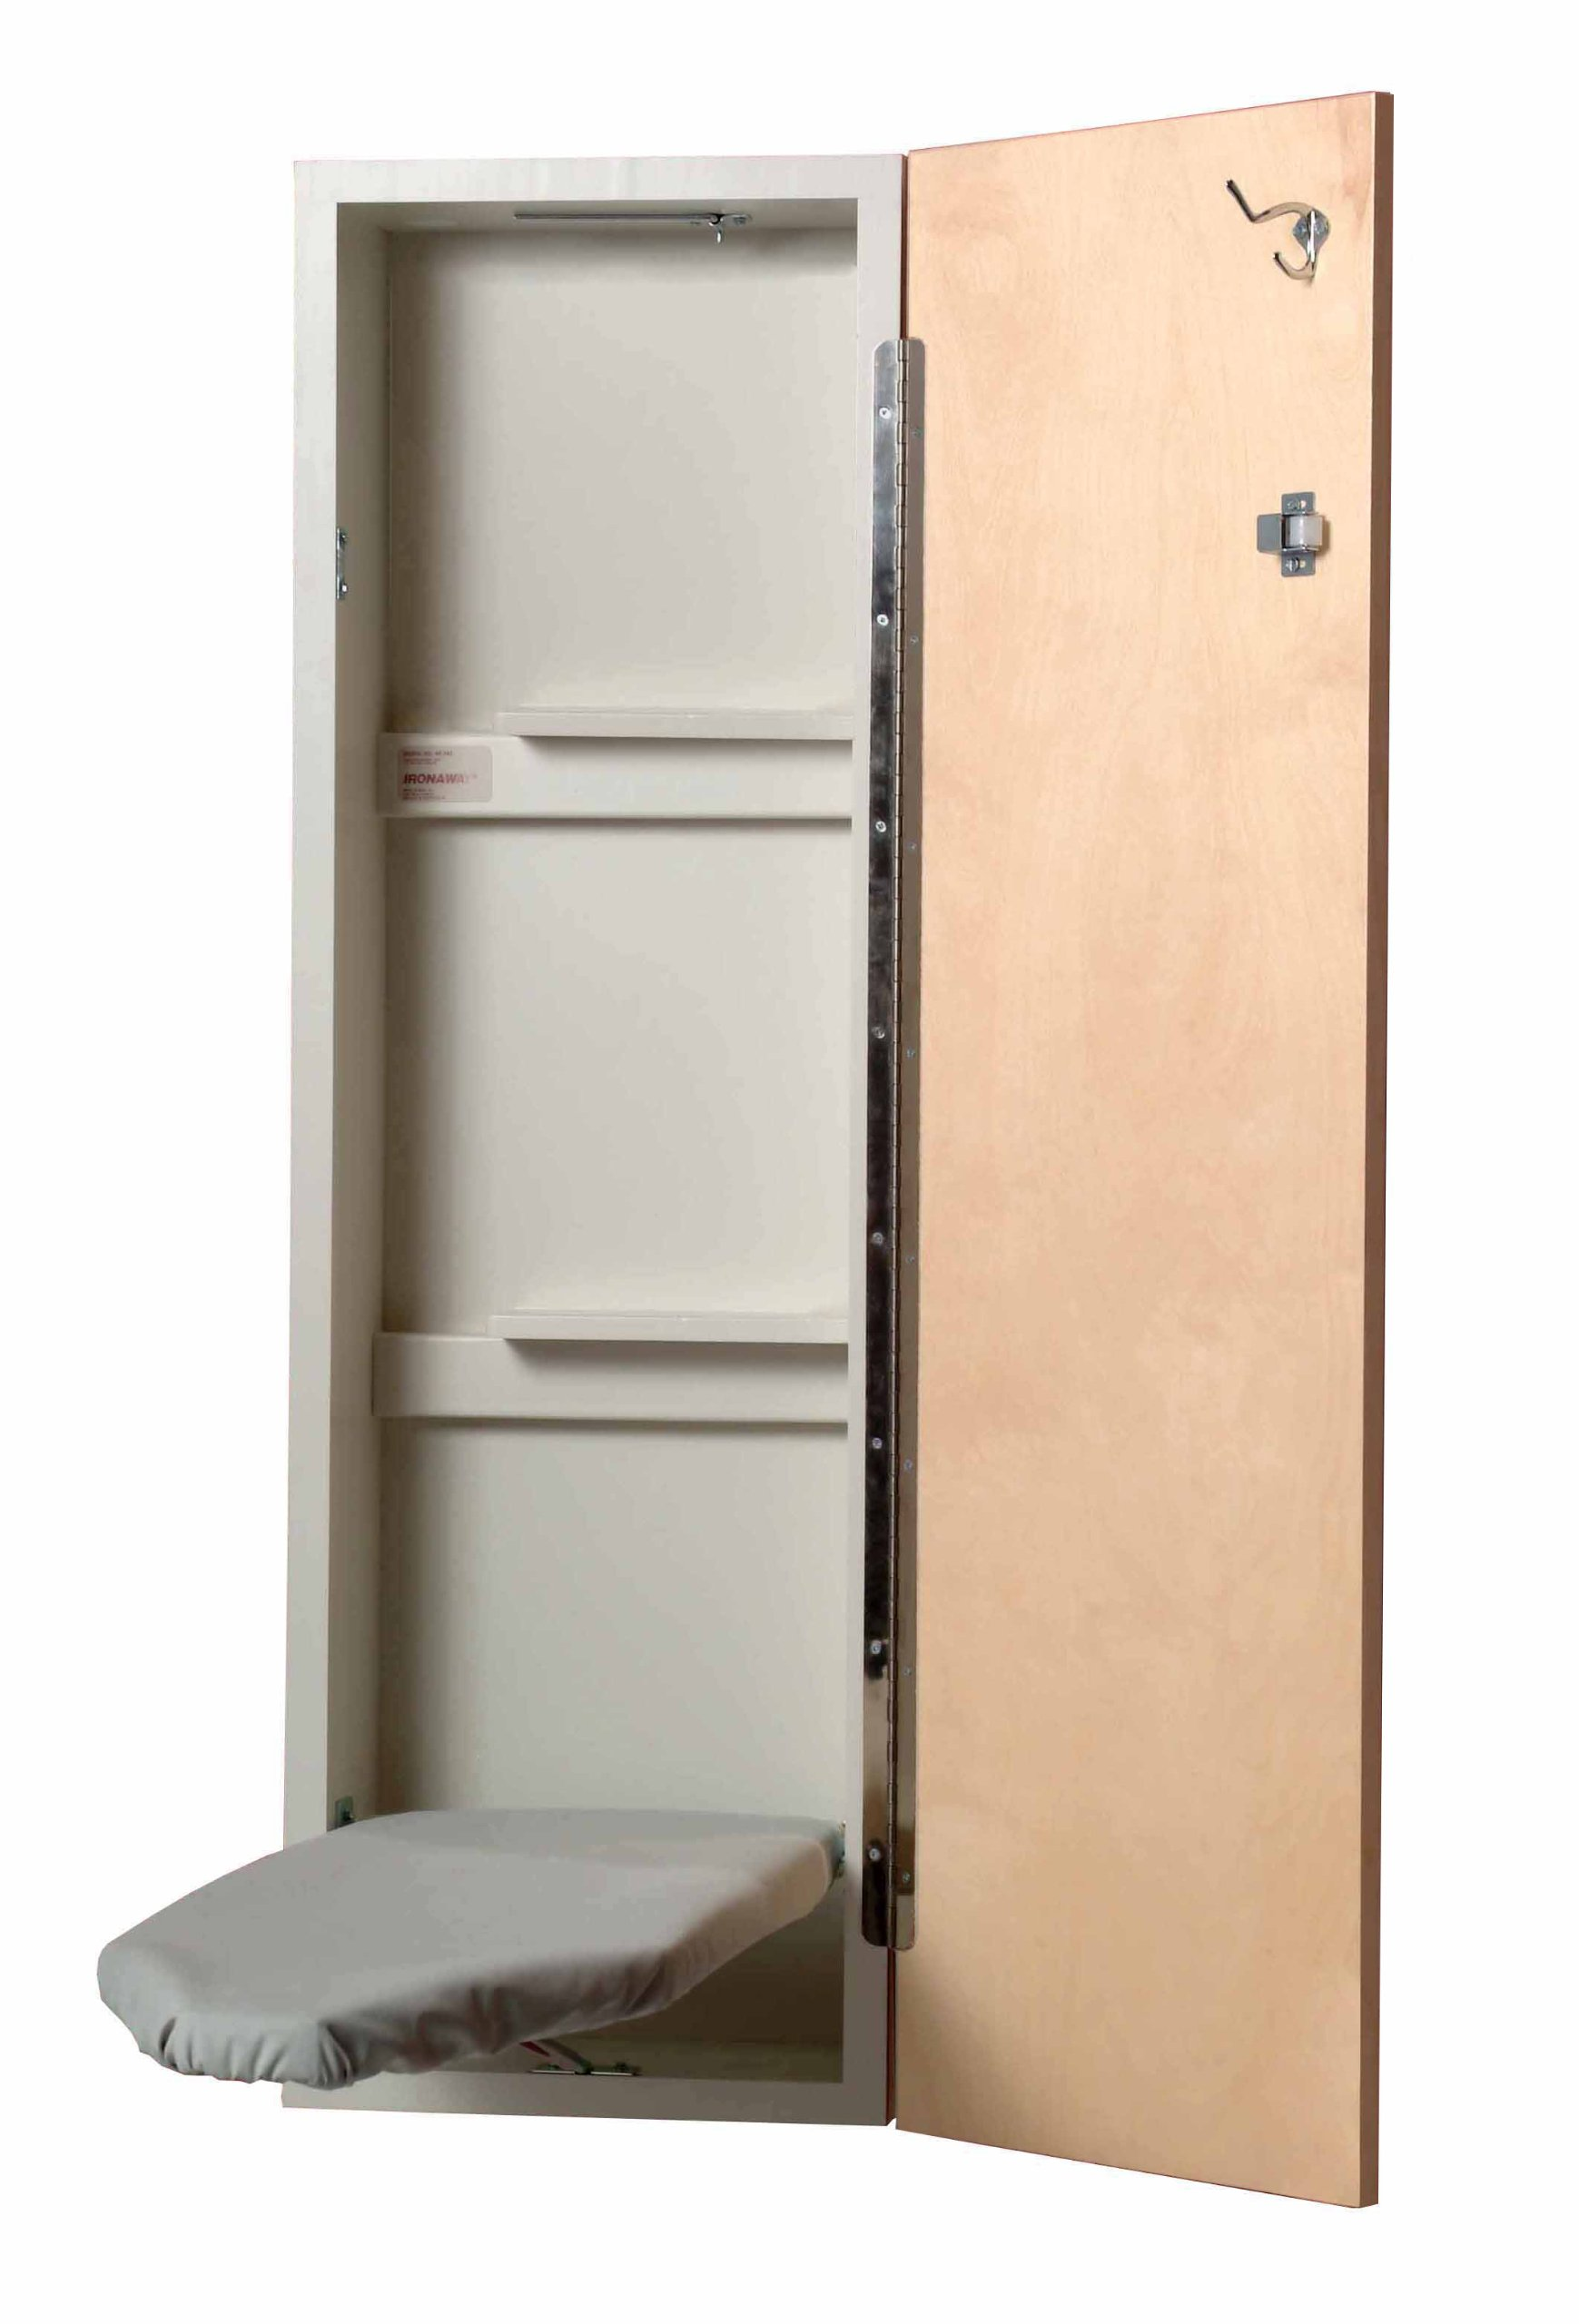 Iron-A-Way NES421AU NE-342 Non-Electric Ironing Center with Swivel Board, Birch